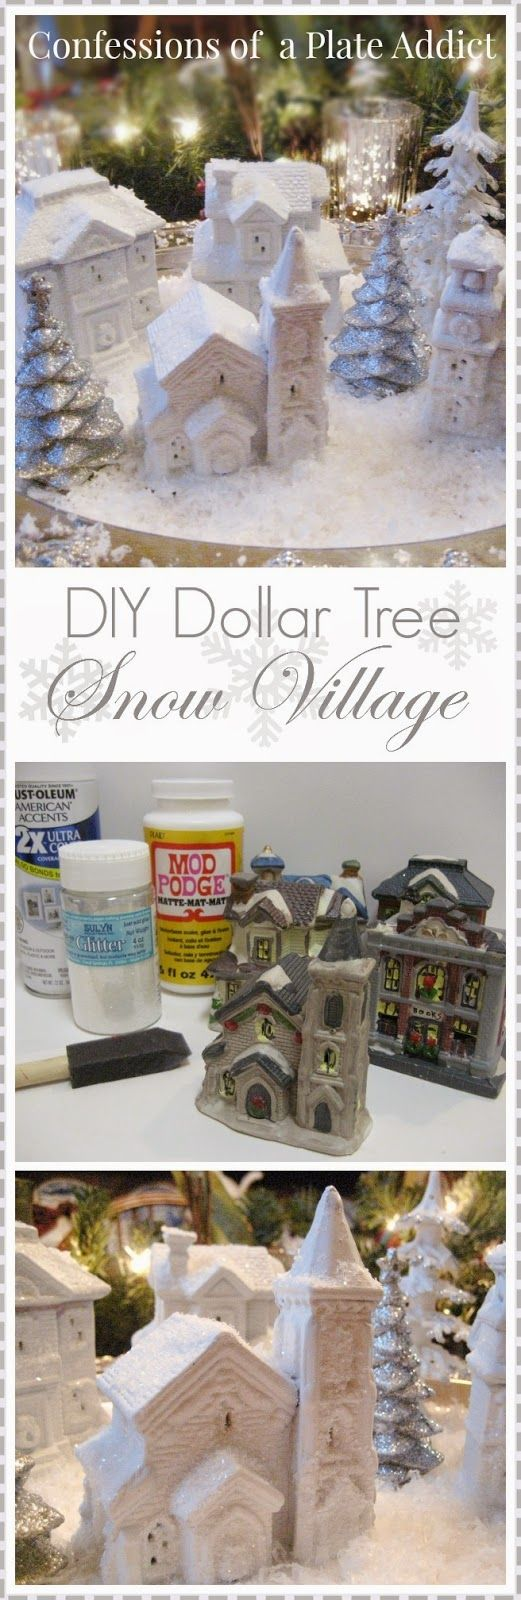 CONFESSIONS OF A PLATE ADDICT: Last Minute Christmas...DIY Dollar Tree Snow Village